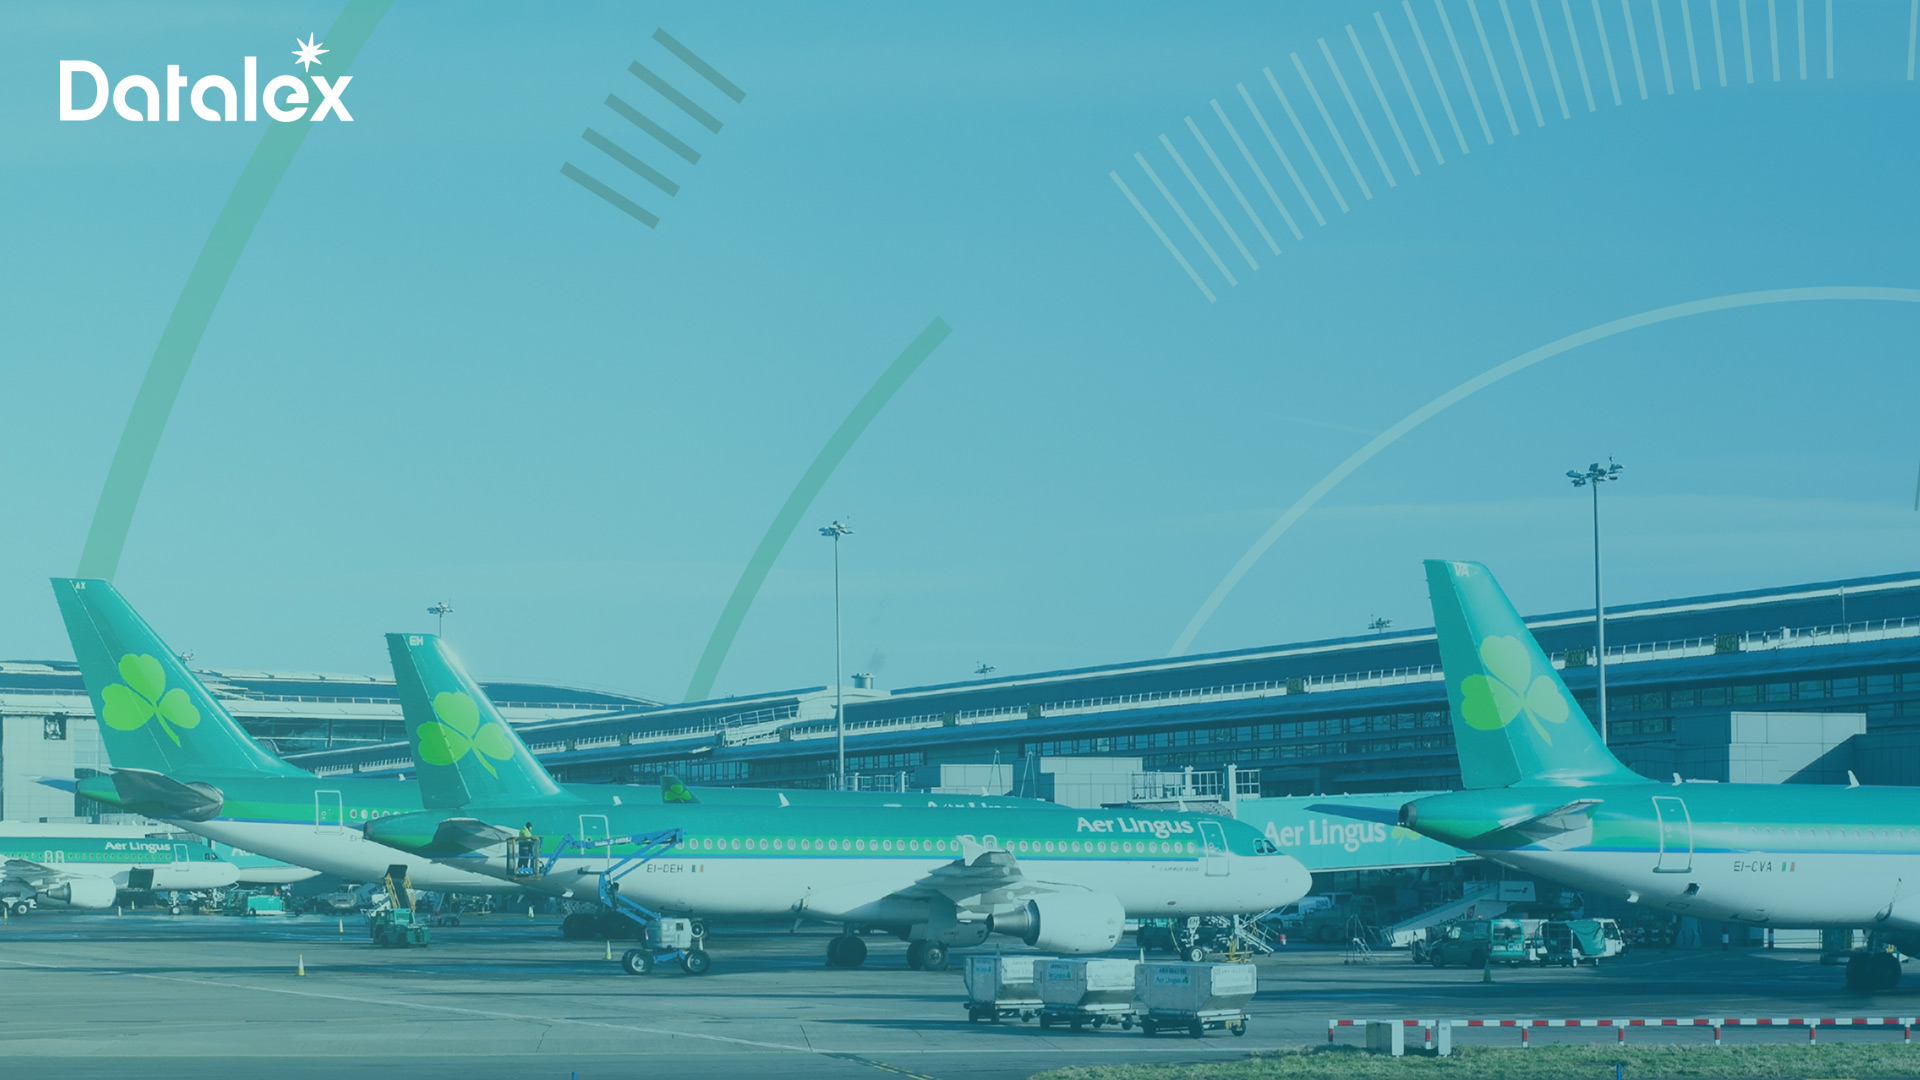 Aer Lingus and Datalex